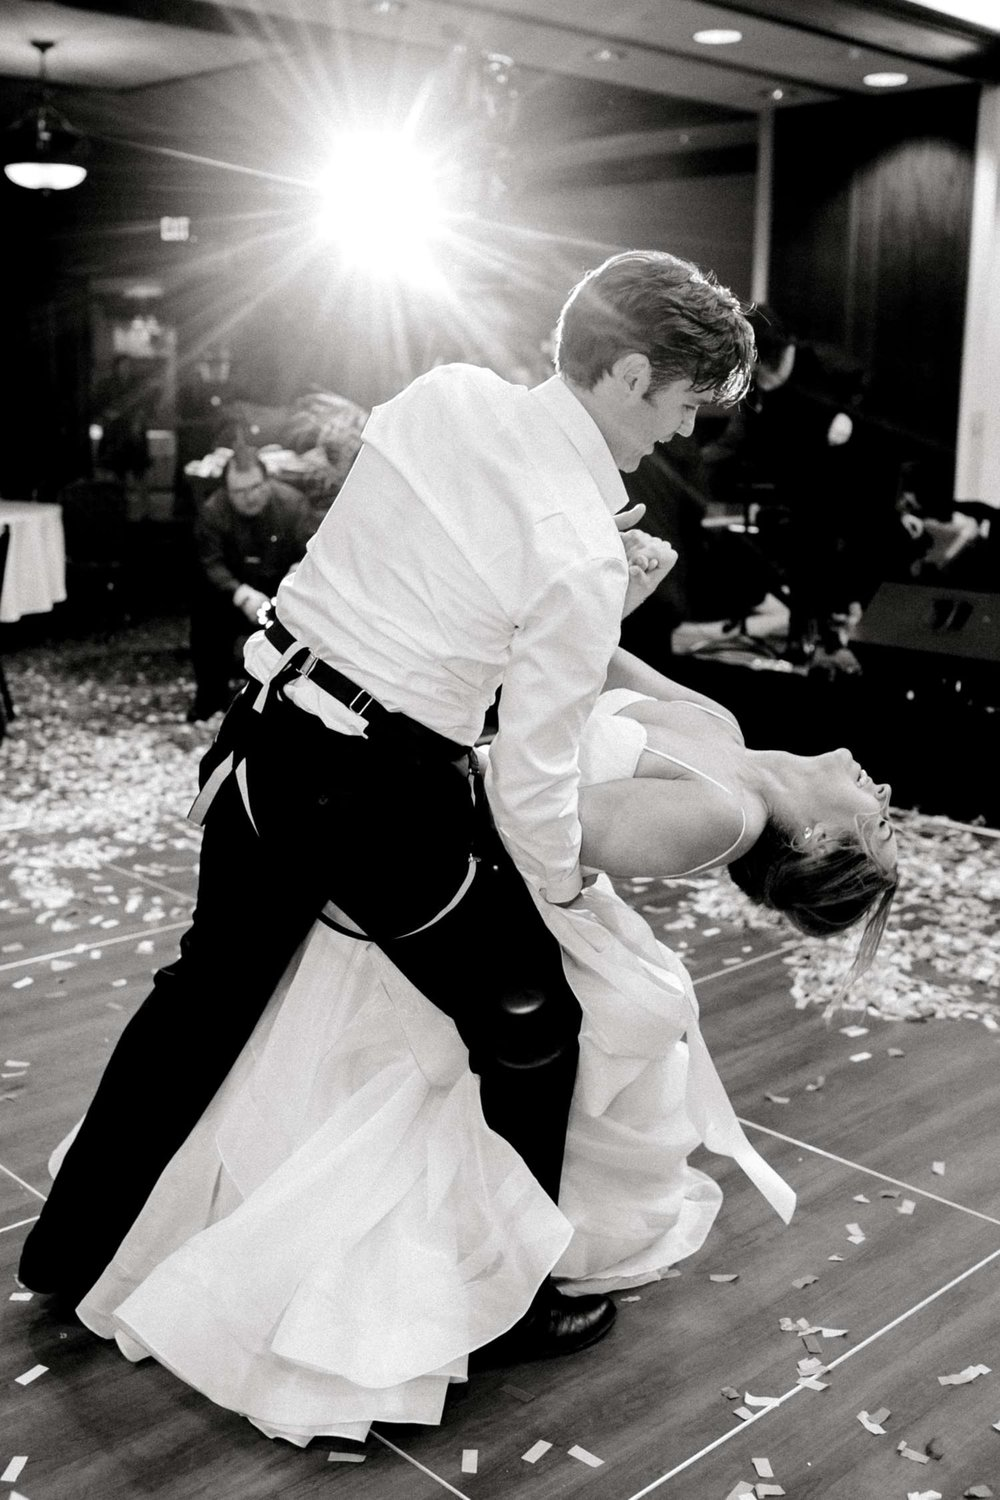 MARLEE+LLOYD+MORGAN+ALLEEJ+TEXAS+TECH+MERKET+ALUMNI+WEDDINGS+LUBBOCK+WEST+TABLE+CLASSIC+SPAIN_0314.jpg